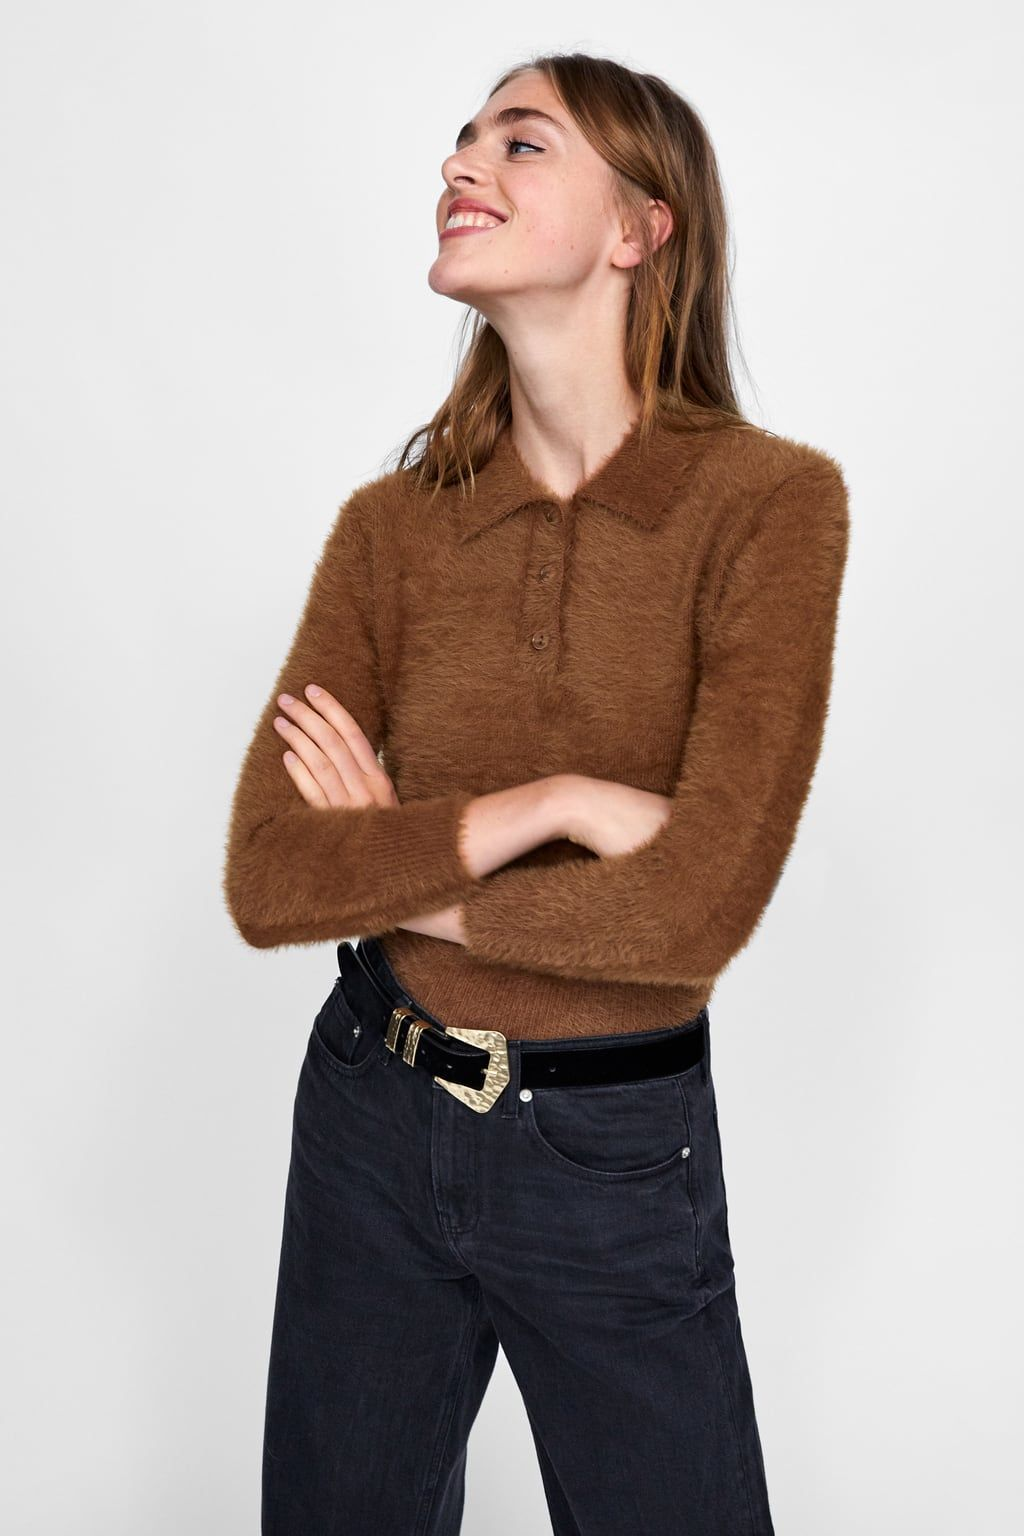 3b15b198 Image 2 of TEXTURED POLO SWEATER from Zara | BUY (APPAREL) | Polo ...